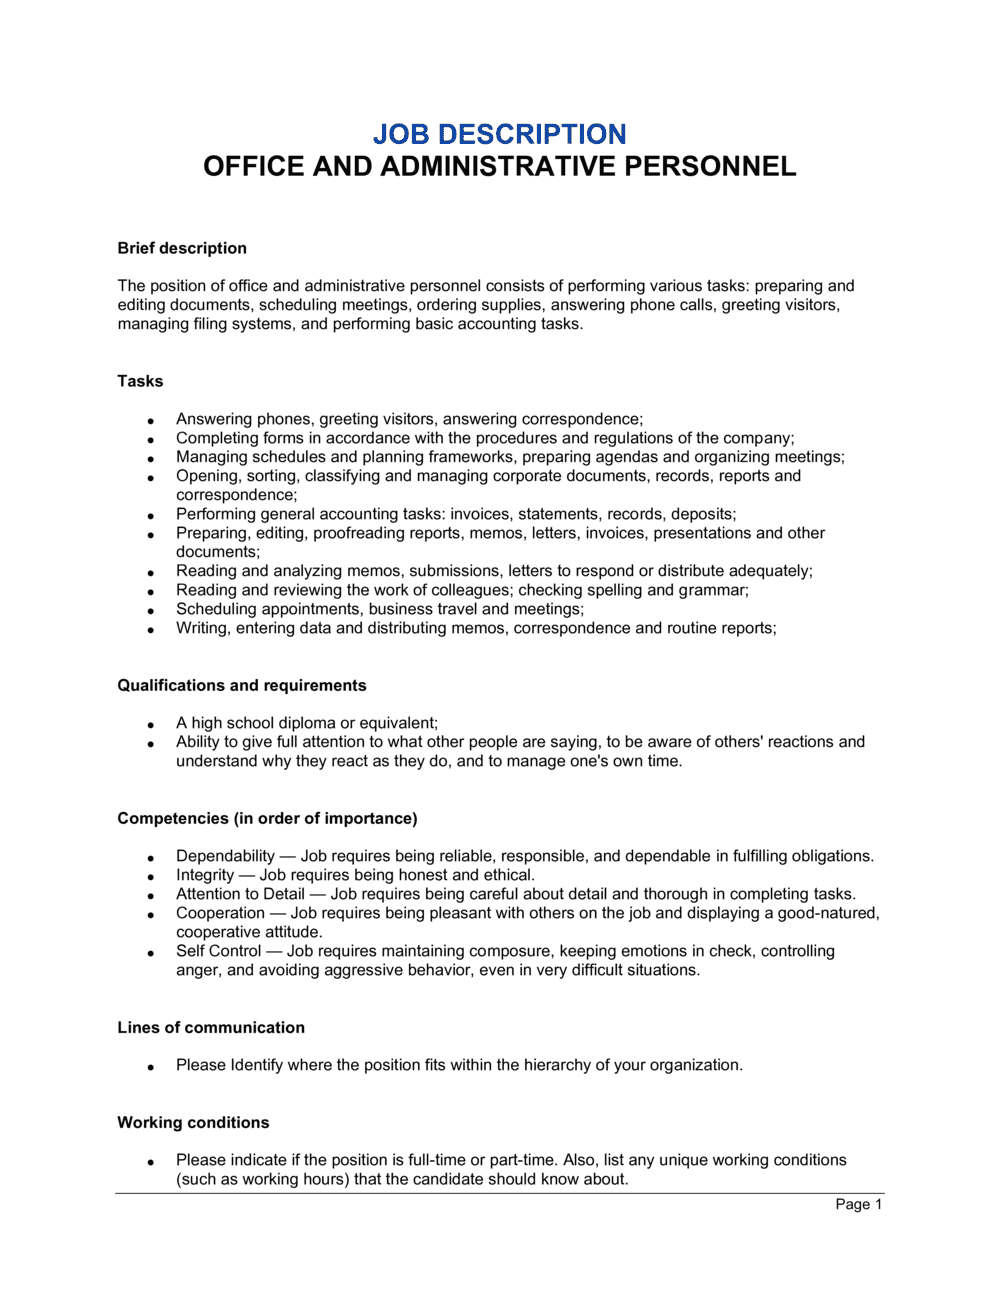 Business-in-a-Box's Office and Administrative Personel Job Description Template